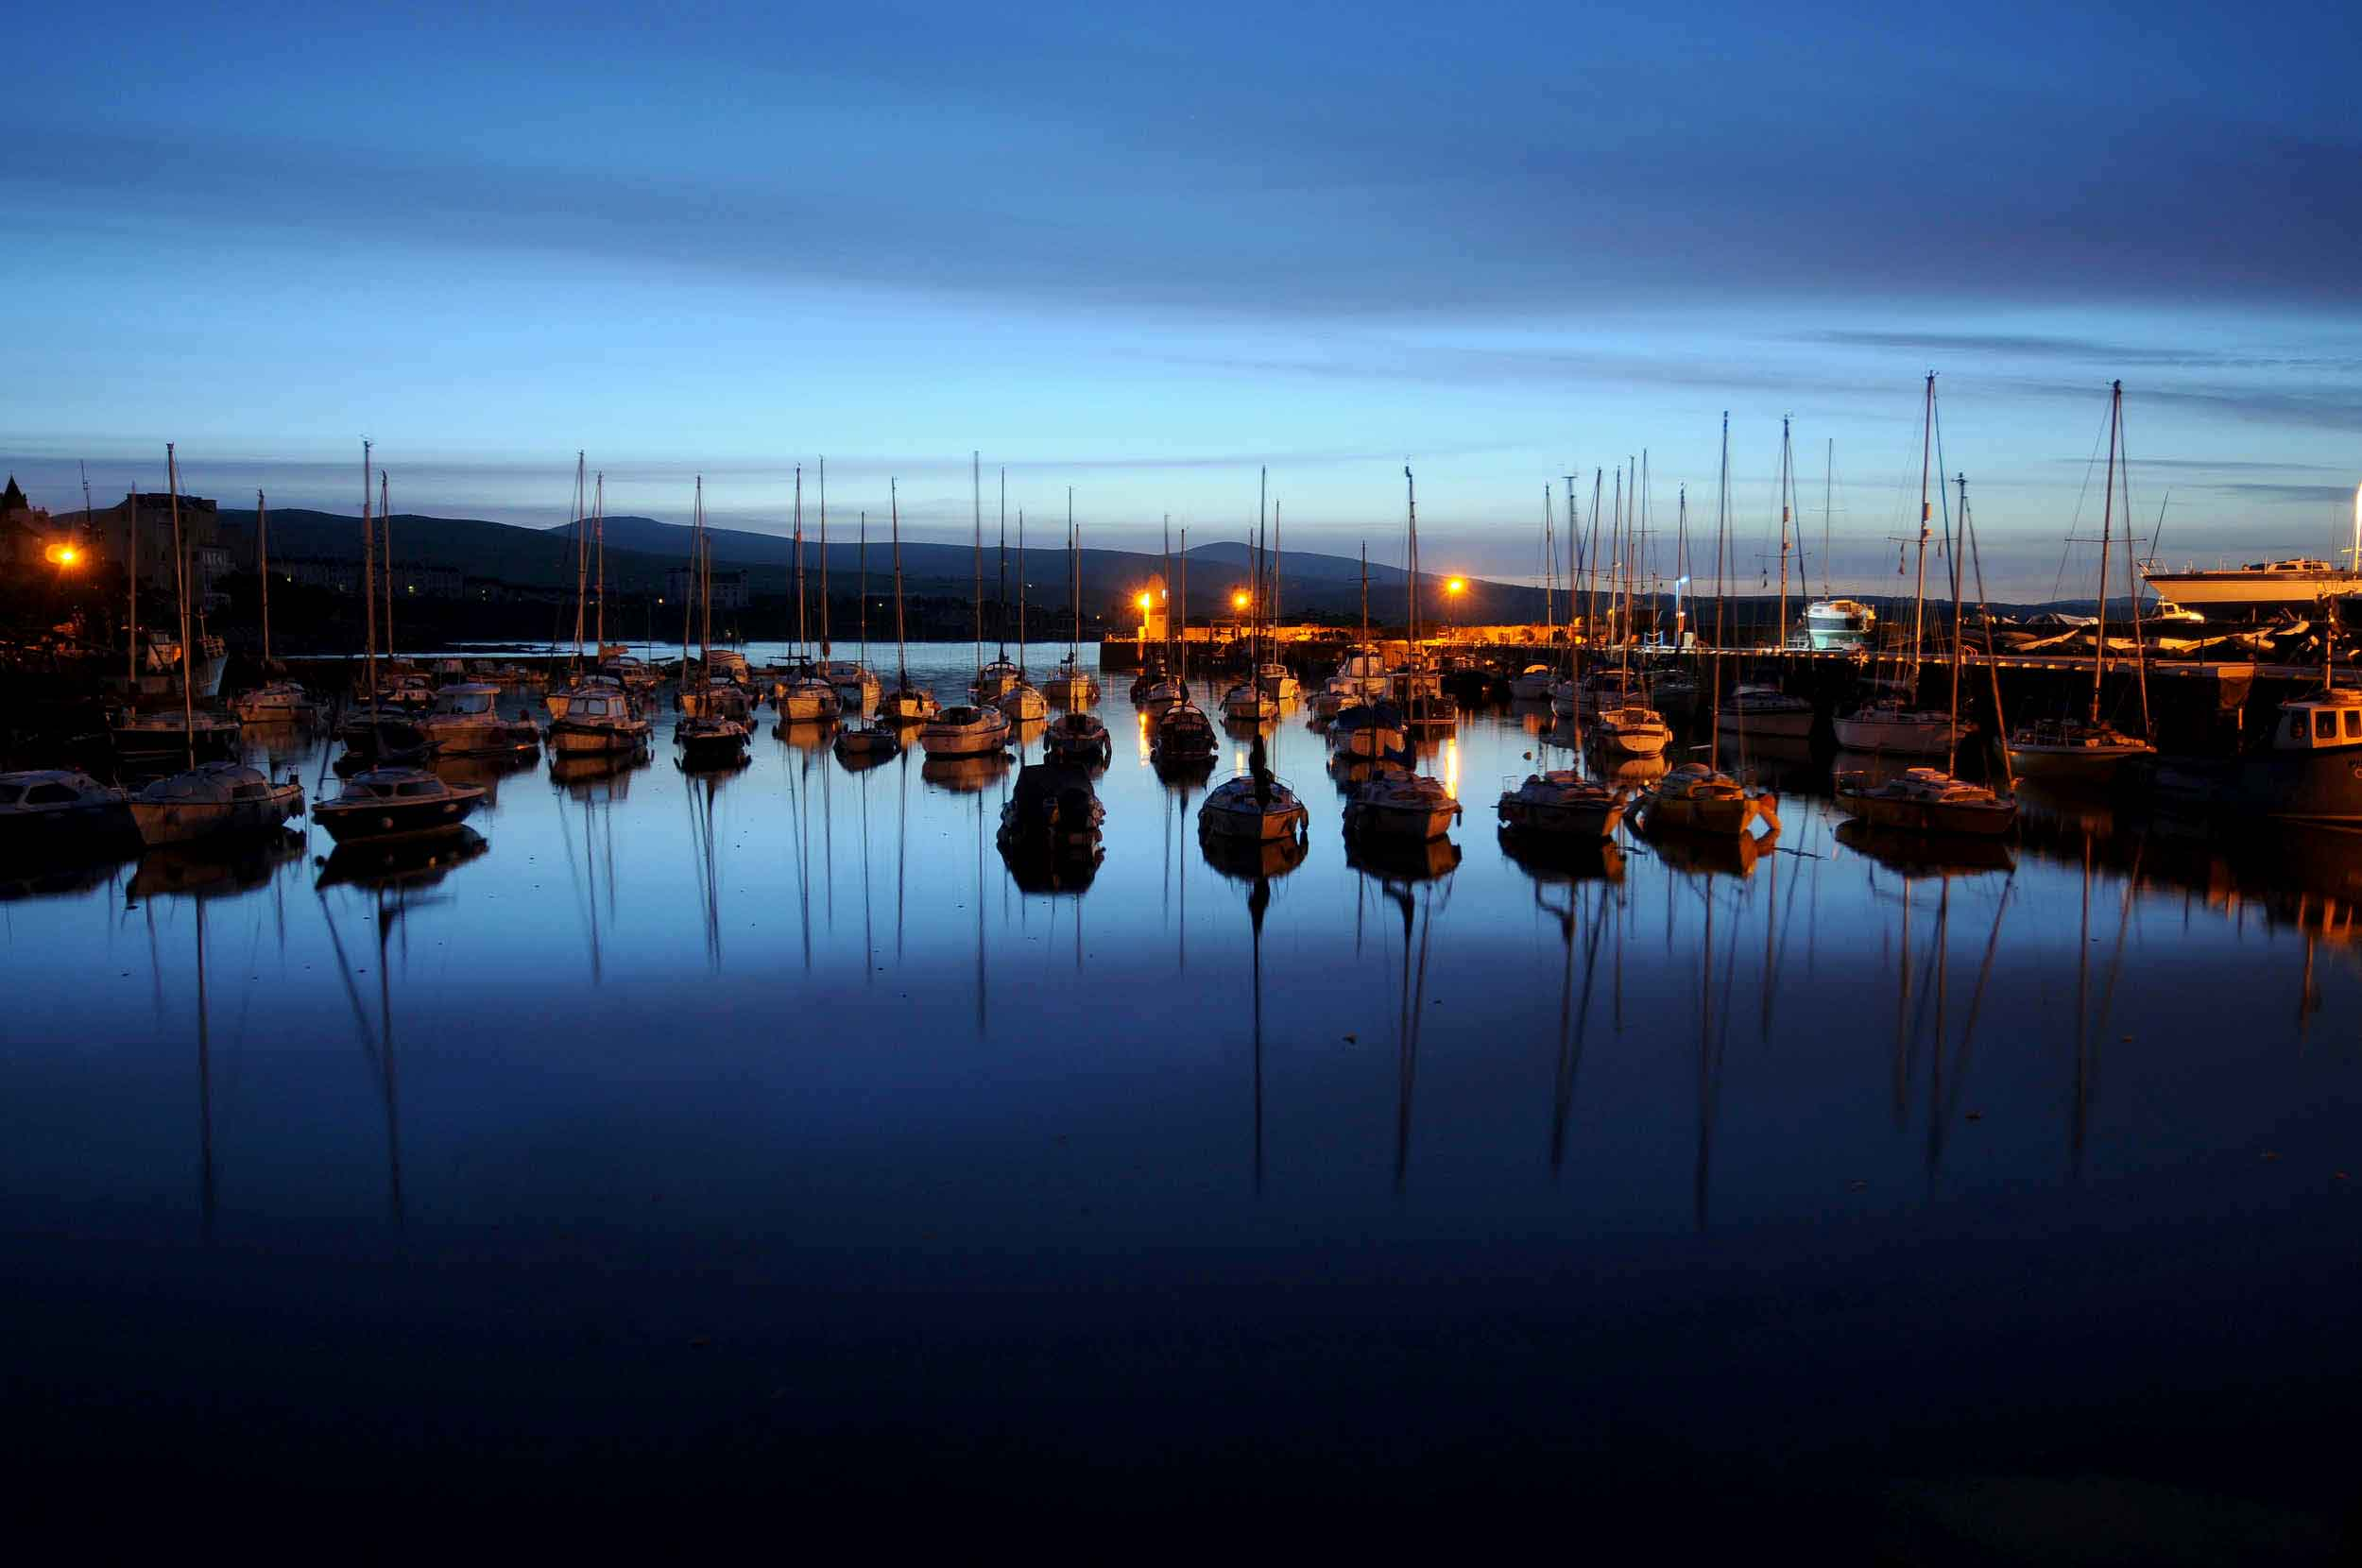 First light at Port St Mary's inner harbour.